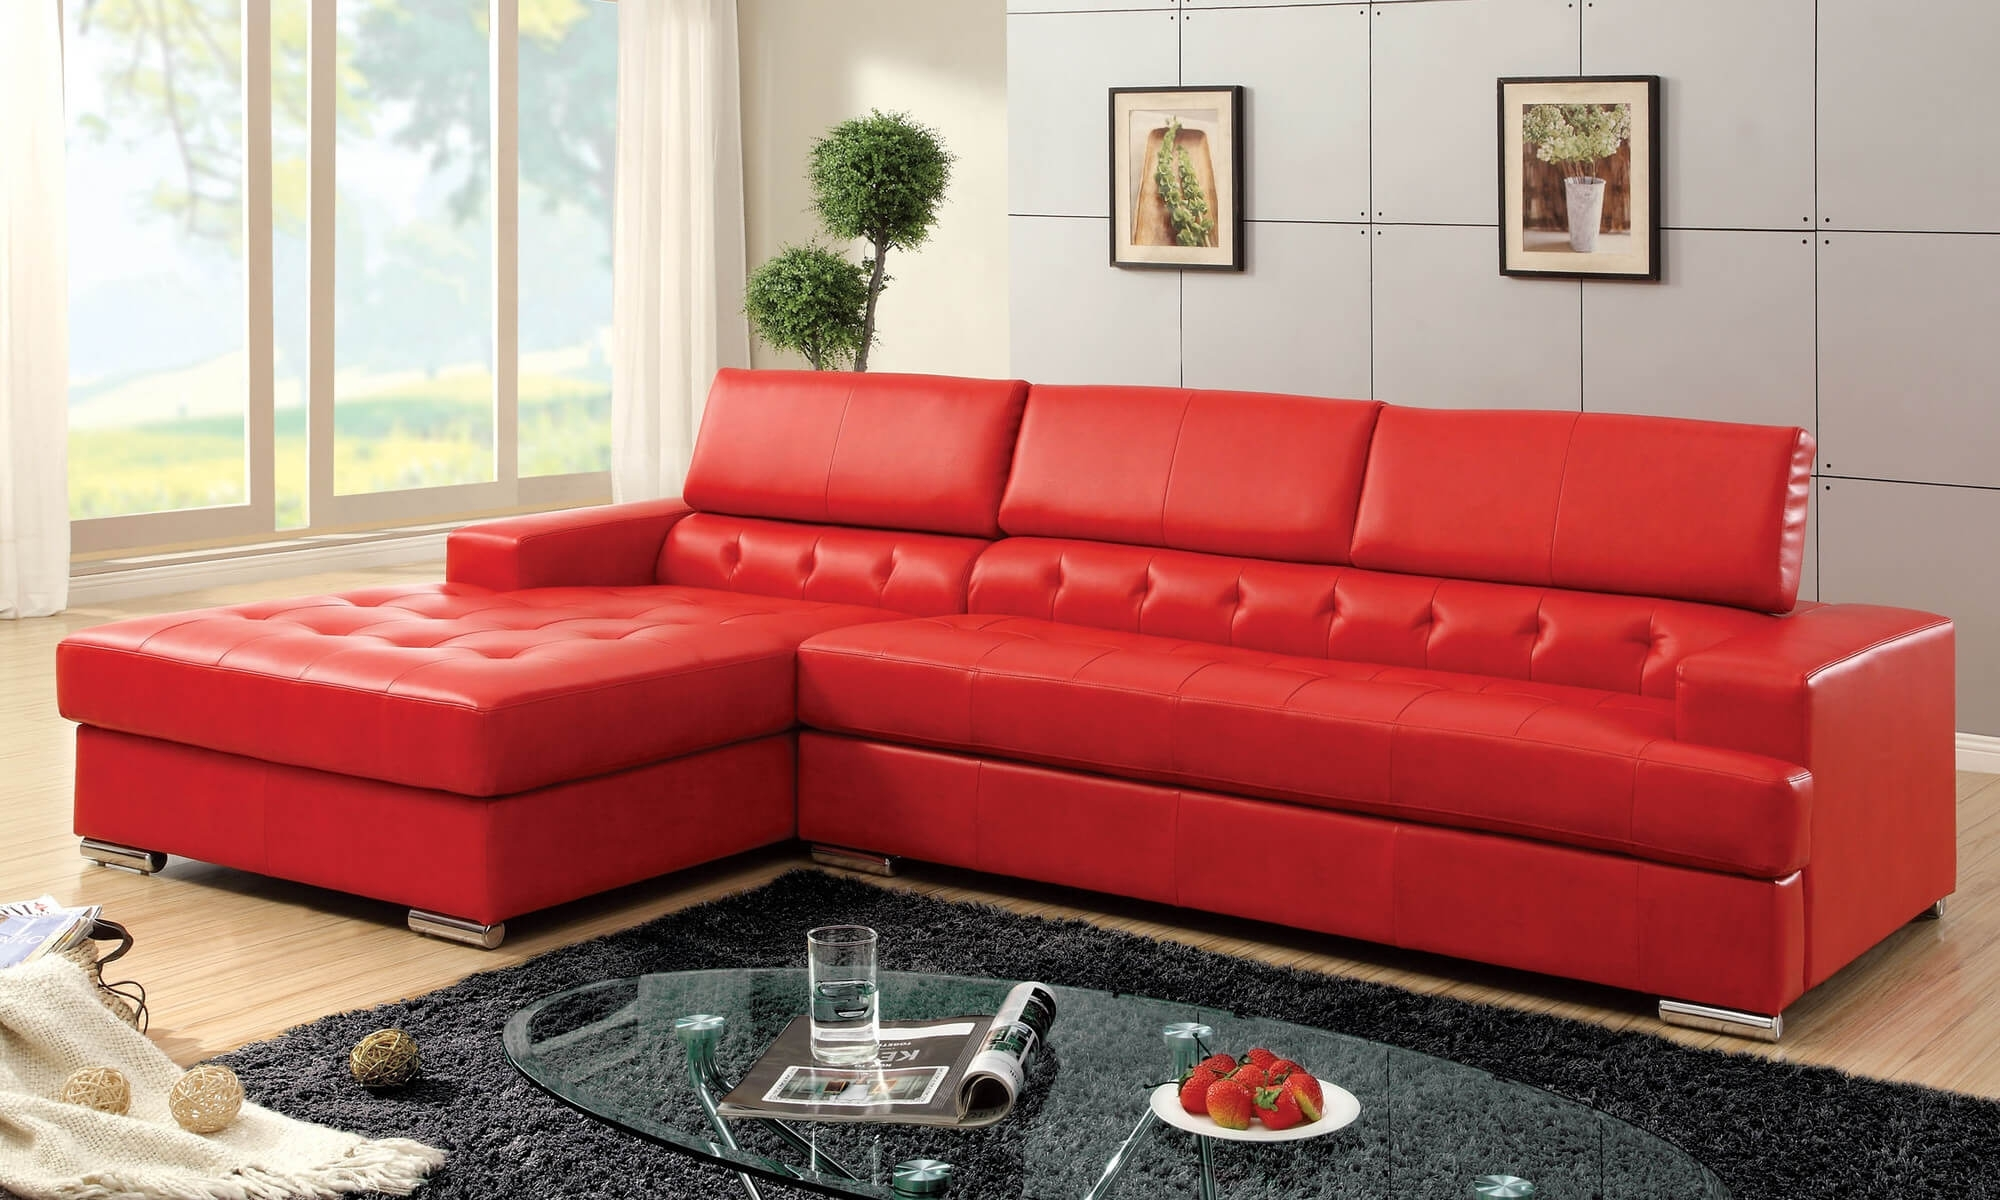 Reliable Red Modern Sofa 18 Stylish Sectional Sofas | Www In Kingston Sectional Sofas (View 2 of 10)